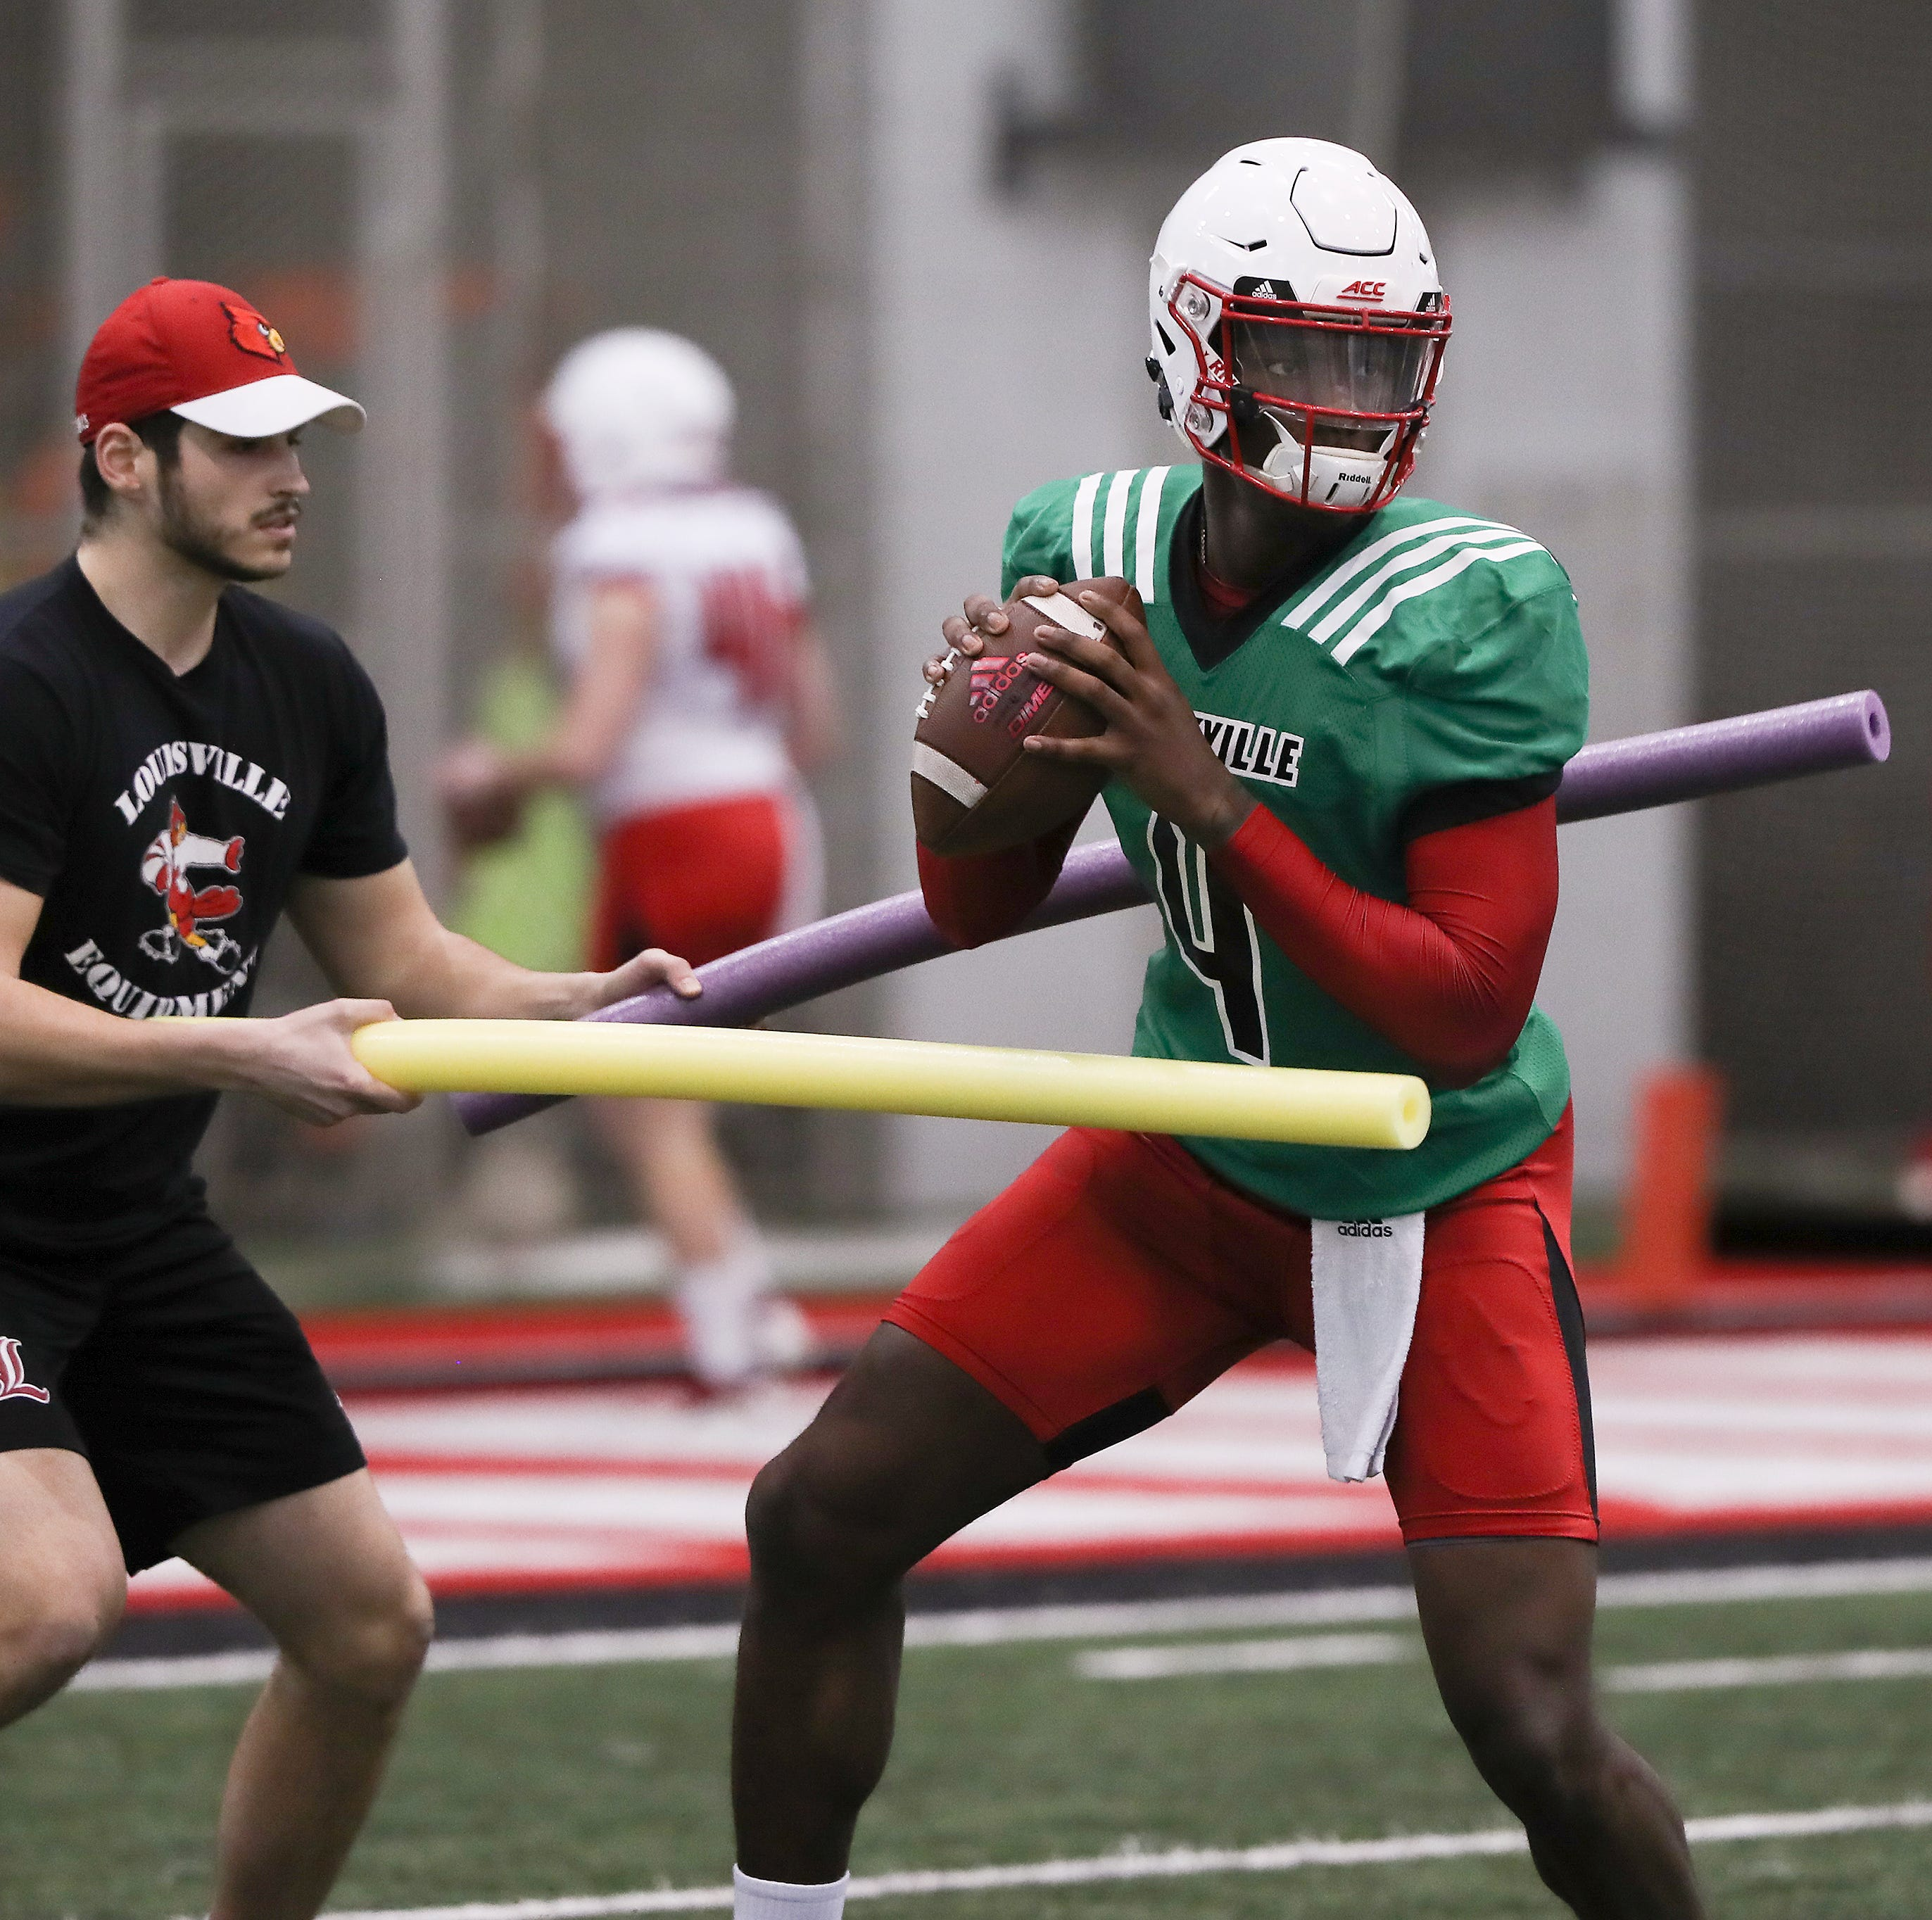 Louisville football's QB competition to be 'wide open' for a while